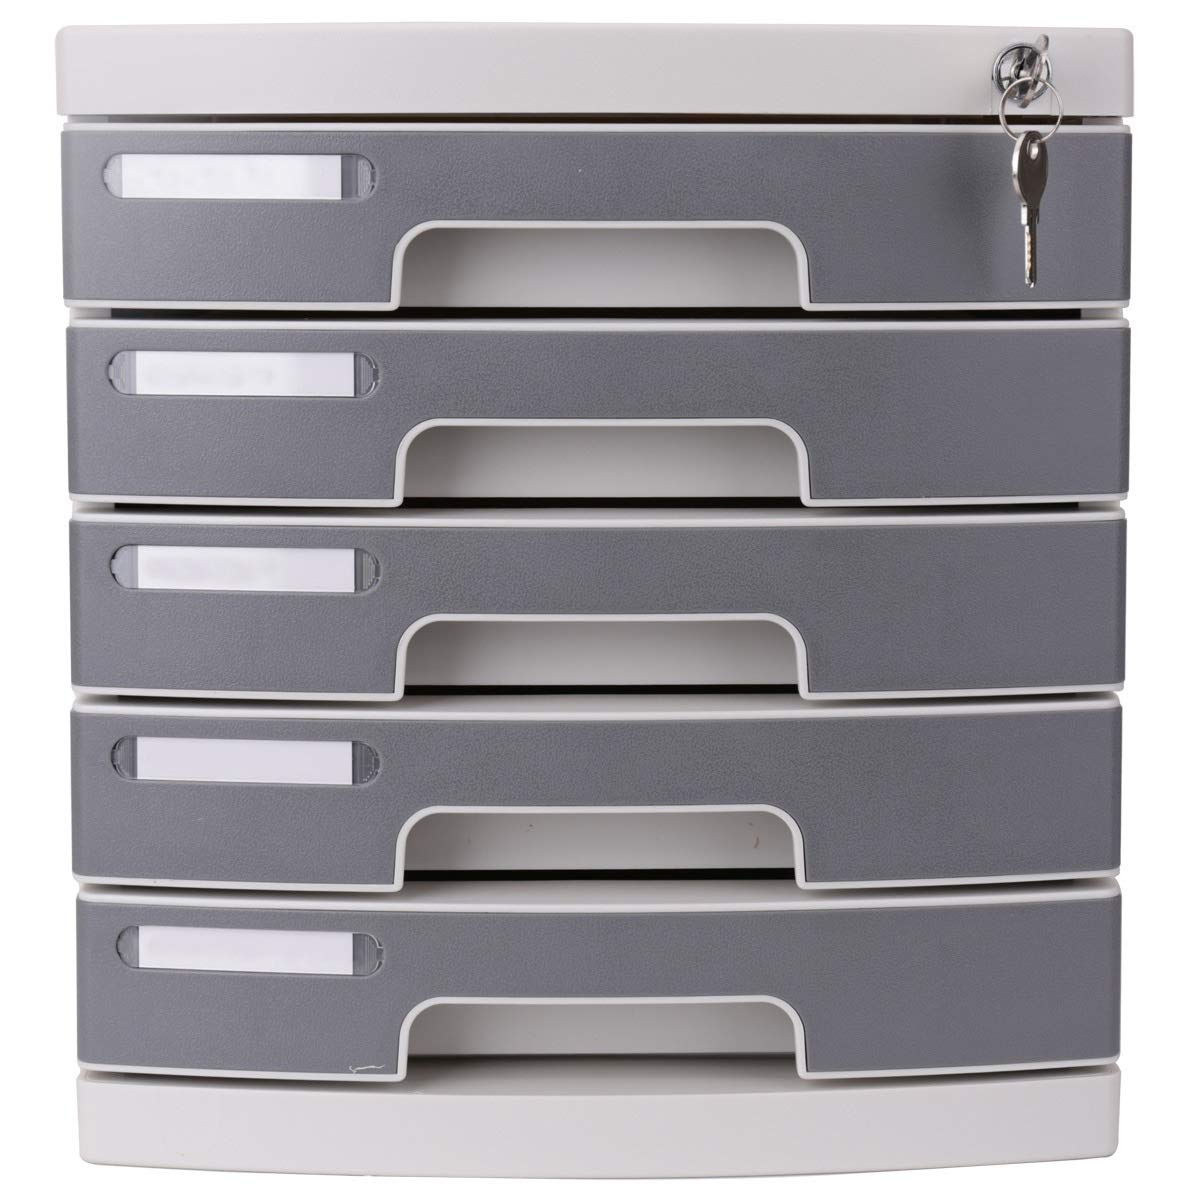 File Cabinet Desktop A4 Plastic Data Cabinet with Lock Drawer Desktop Cabinet File Storage Cabinet Storage Box (Design: 5 Floors) Filing cabinets